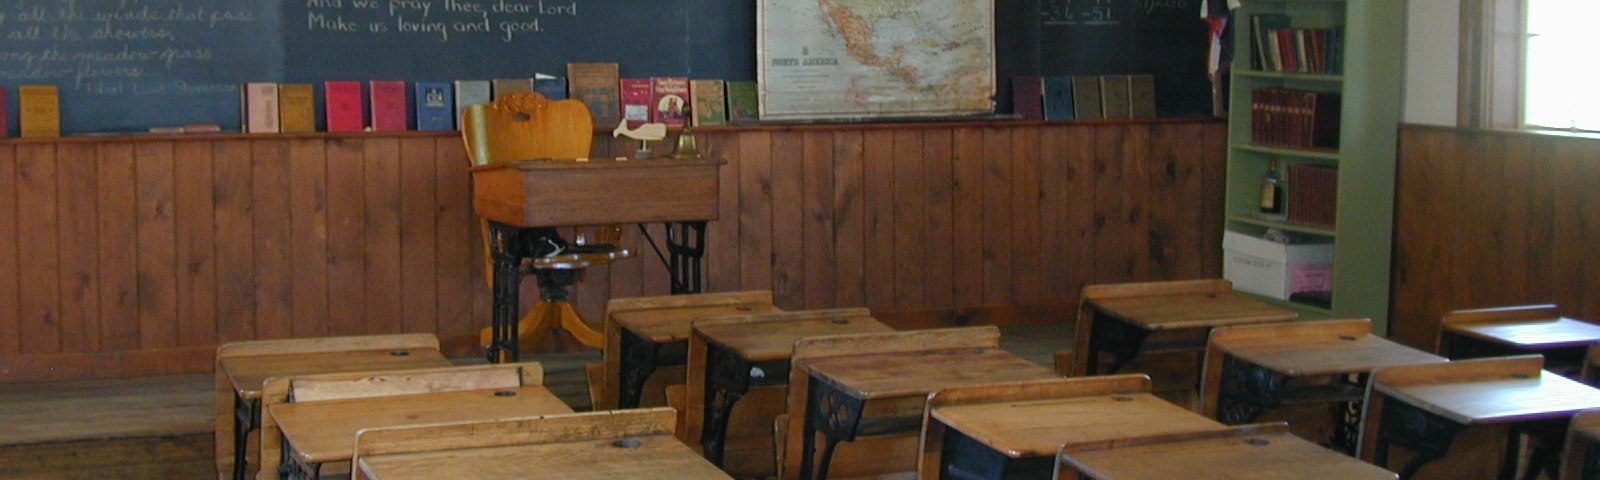 Old-style classroom